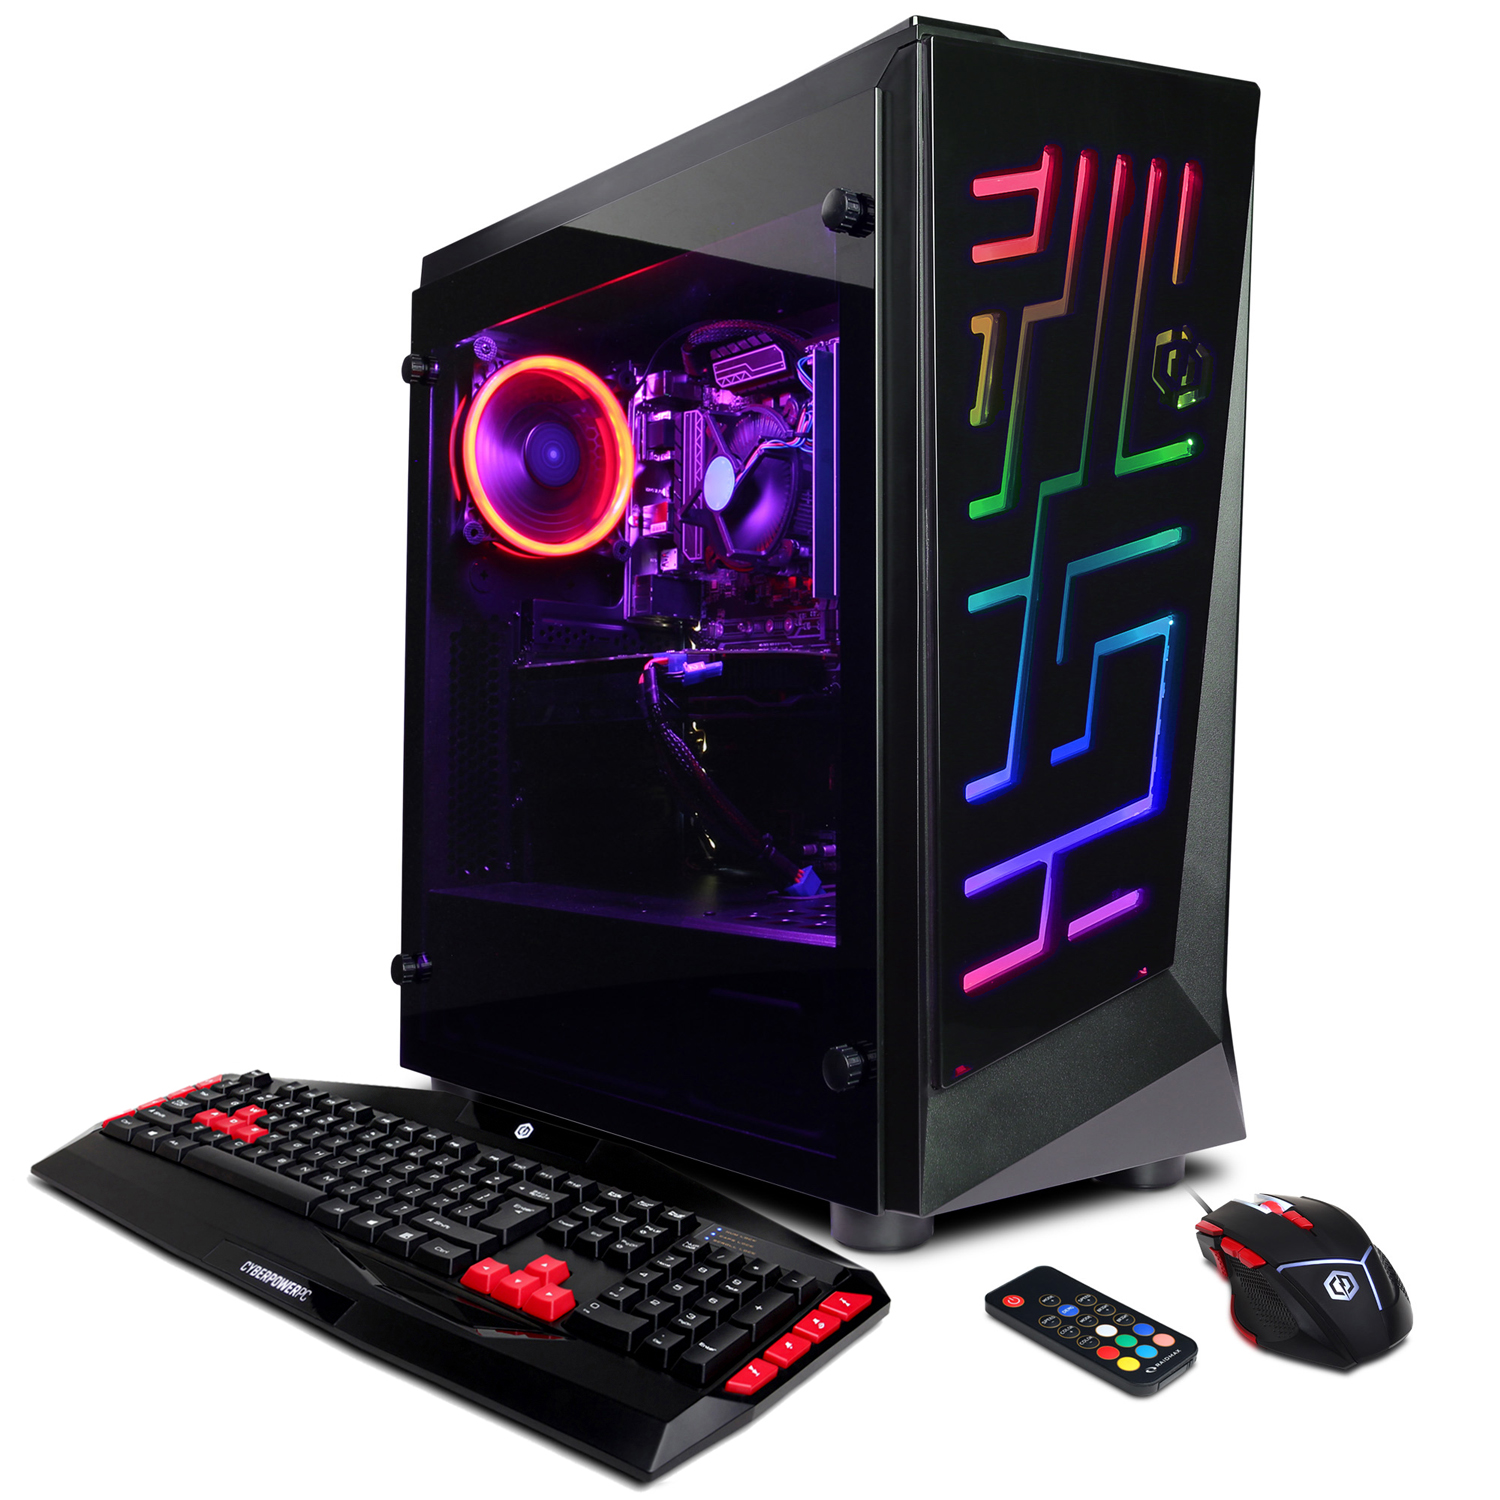 CYBERPOWERPC Gamer Xtreme GXi10920CPG w/ Intel i5-8600K Processor, AMD Radeon RX 580 4GB, 8GB Memory, 120GB SSD, 1TB HD and Windows 10 Home 64-Bit Gaming PC Gaming Bundle Included